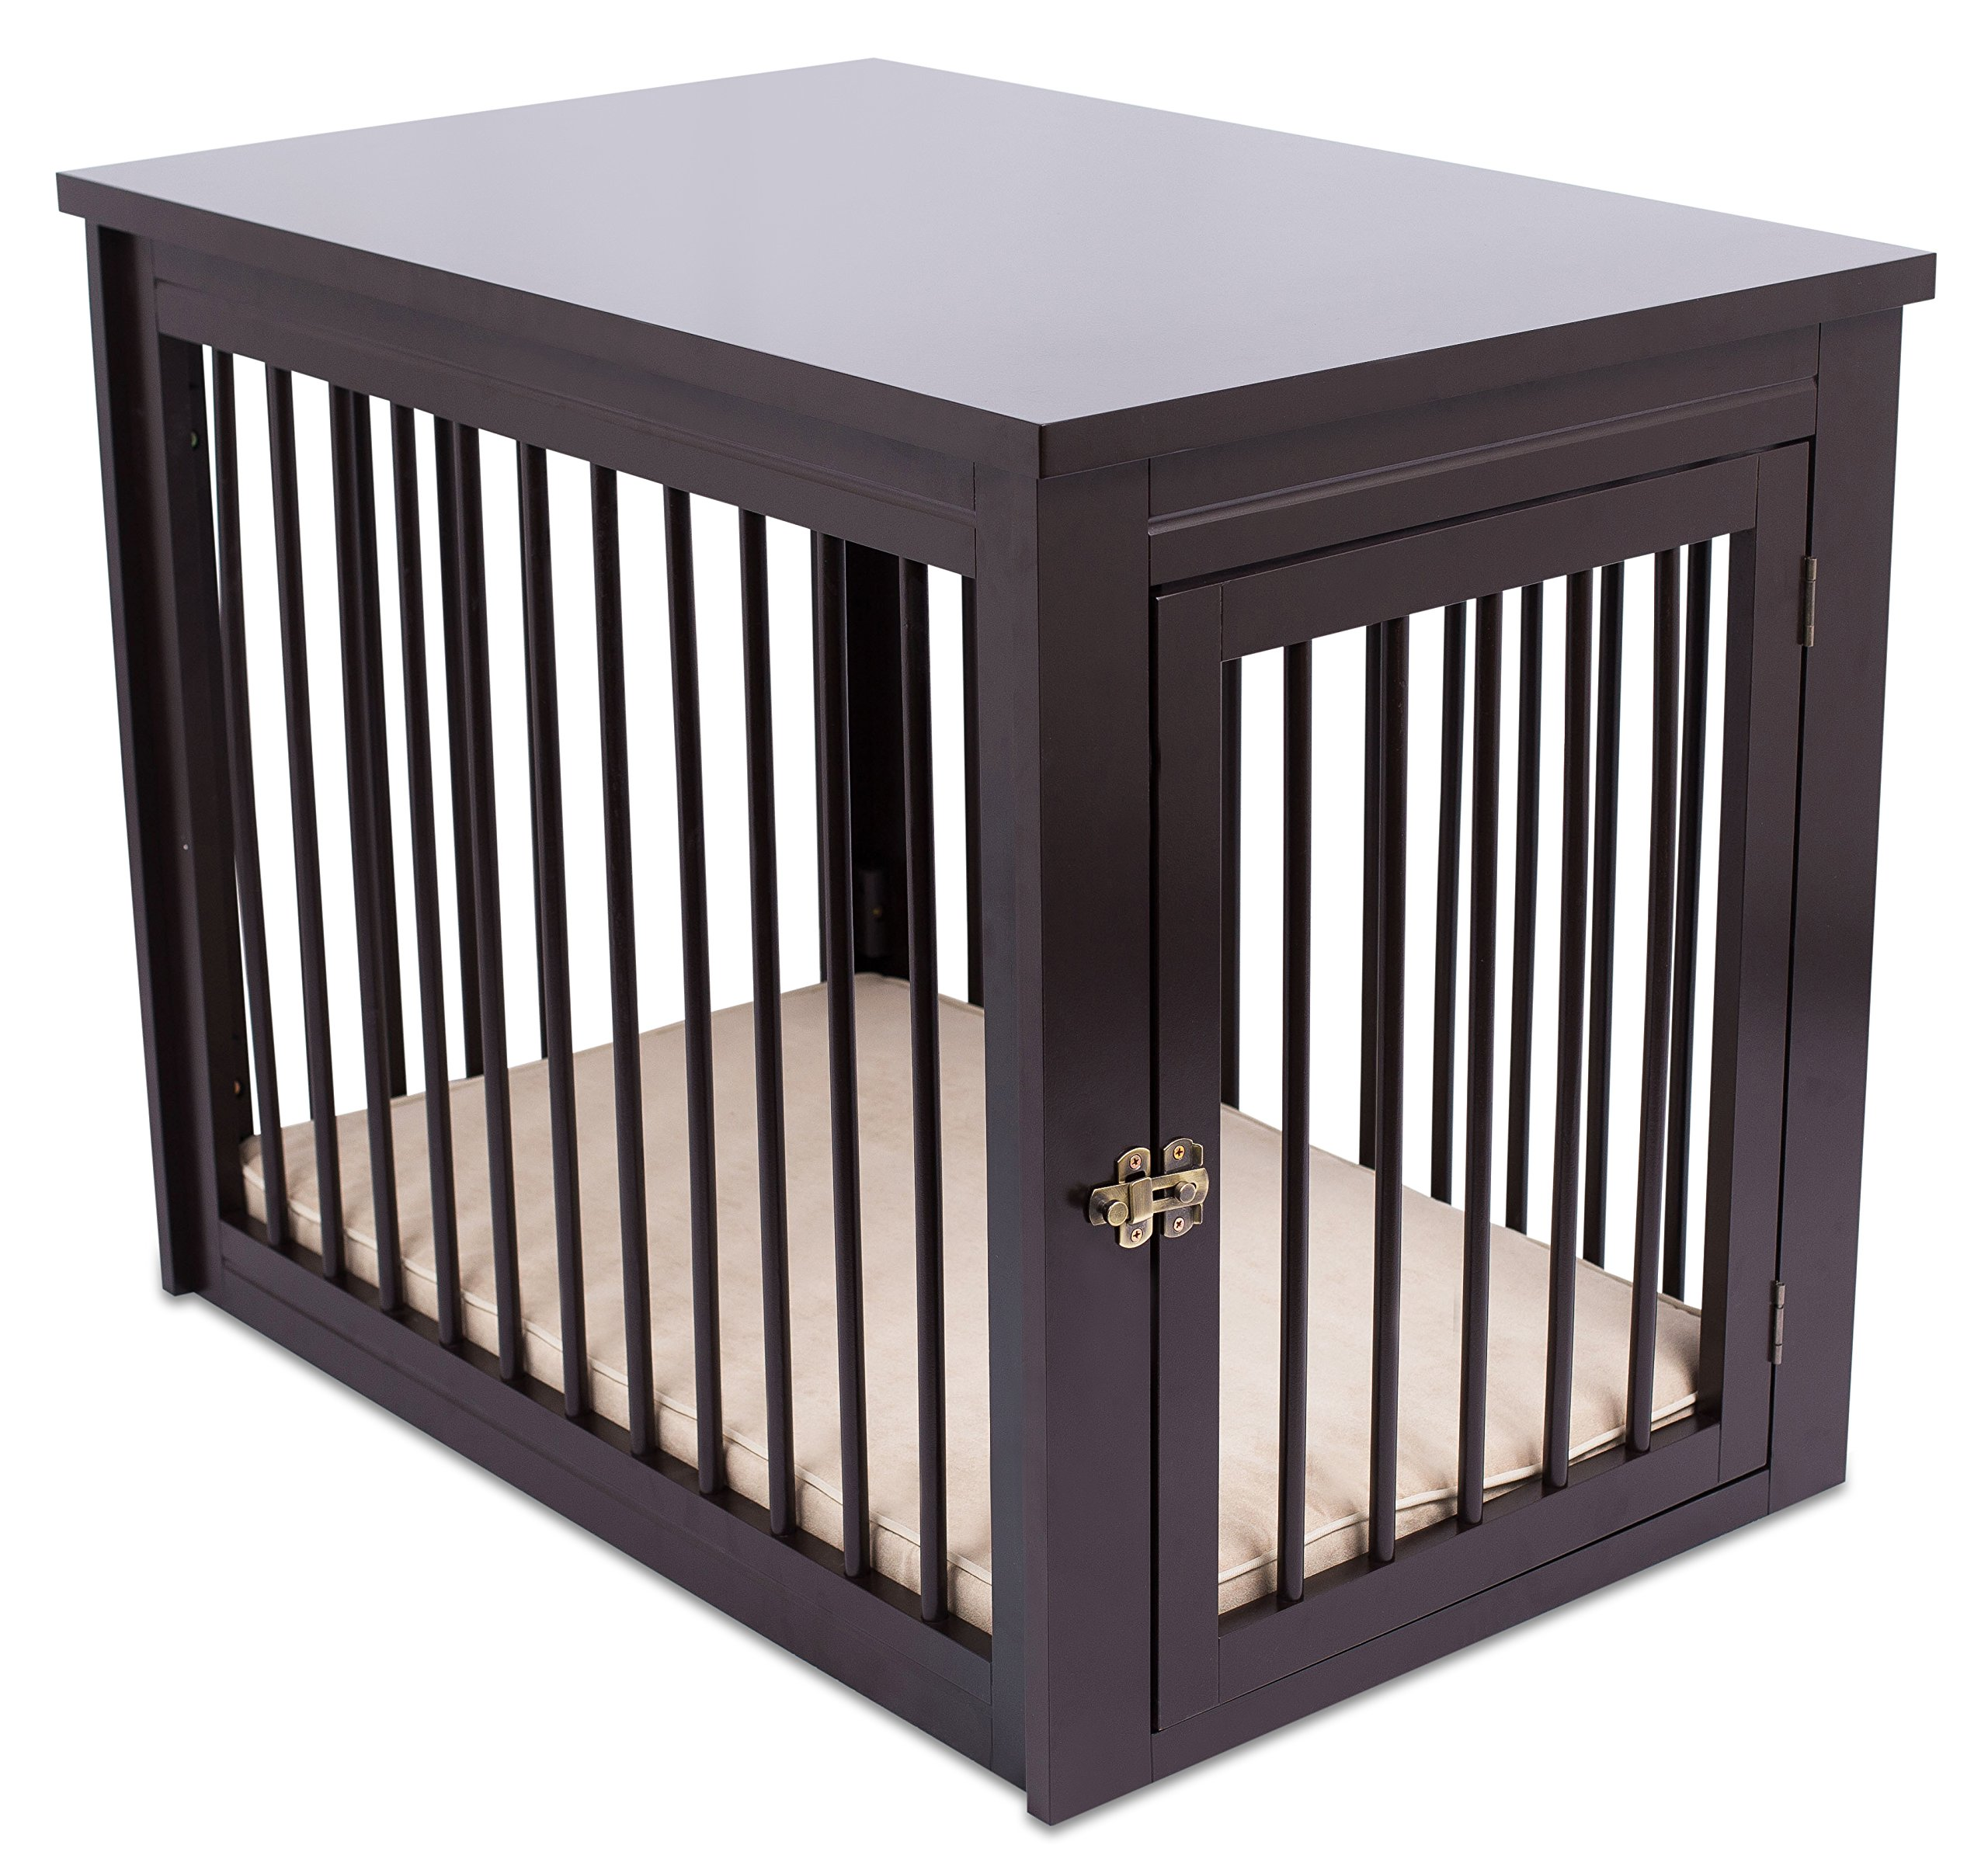 Internet's Best Decorative Dog Kennel with Pet Bed - Wooden Dog House - Large Indoor Pet Crate Side Table - Espresso by Internet's Best